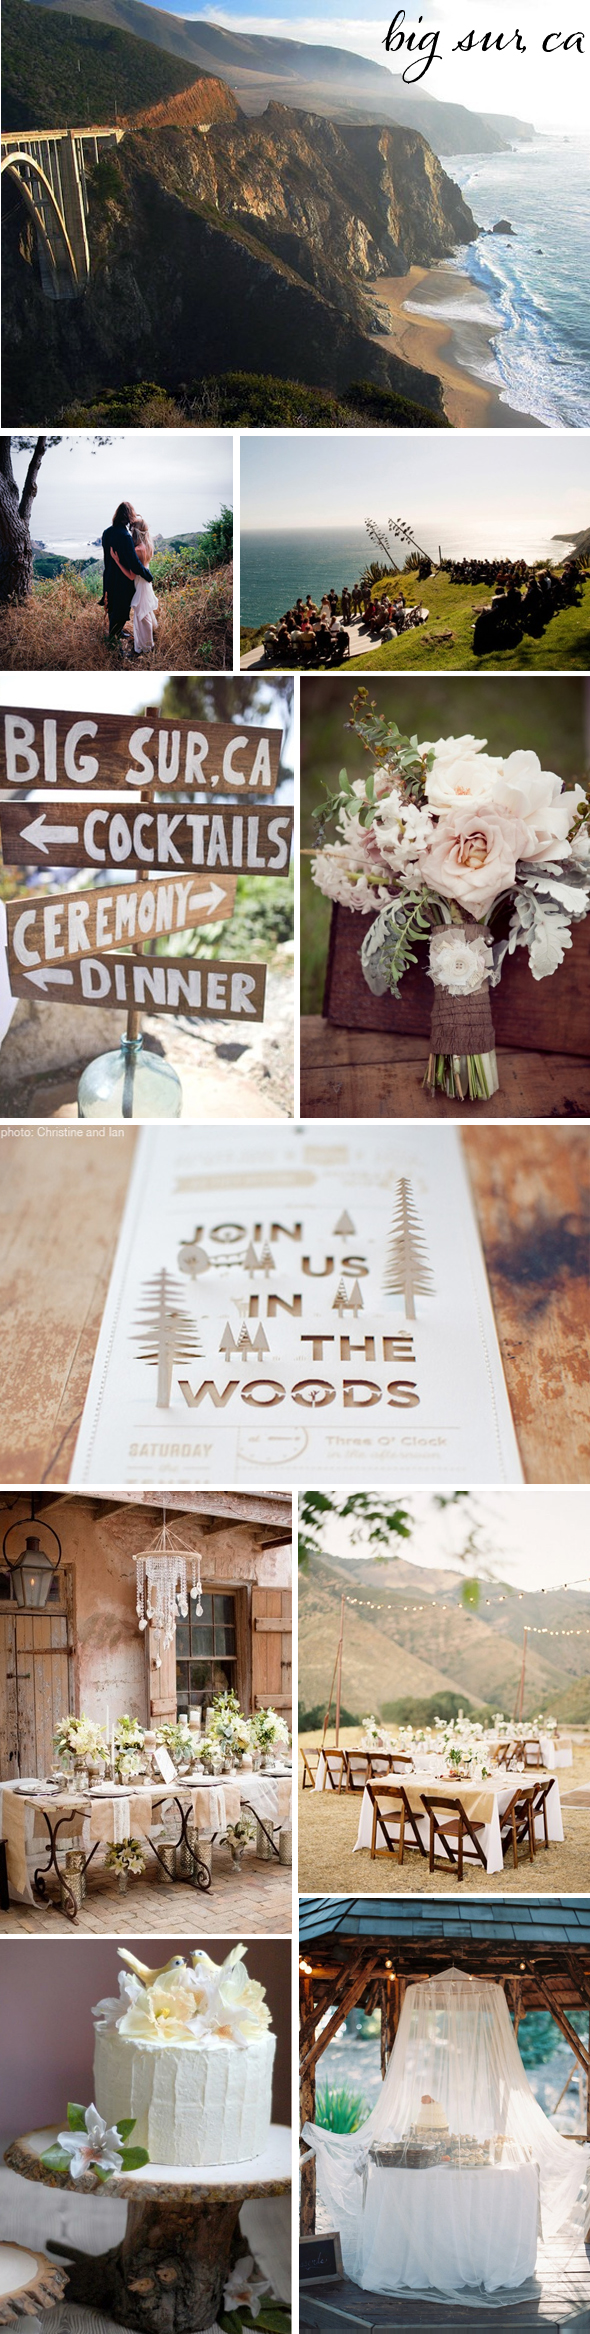 big sur weddings